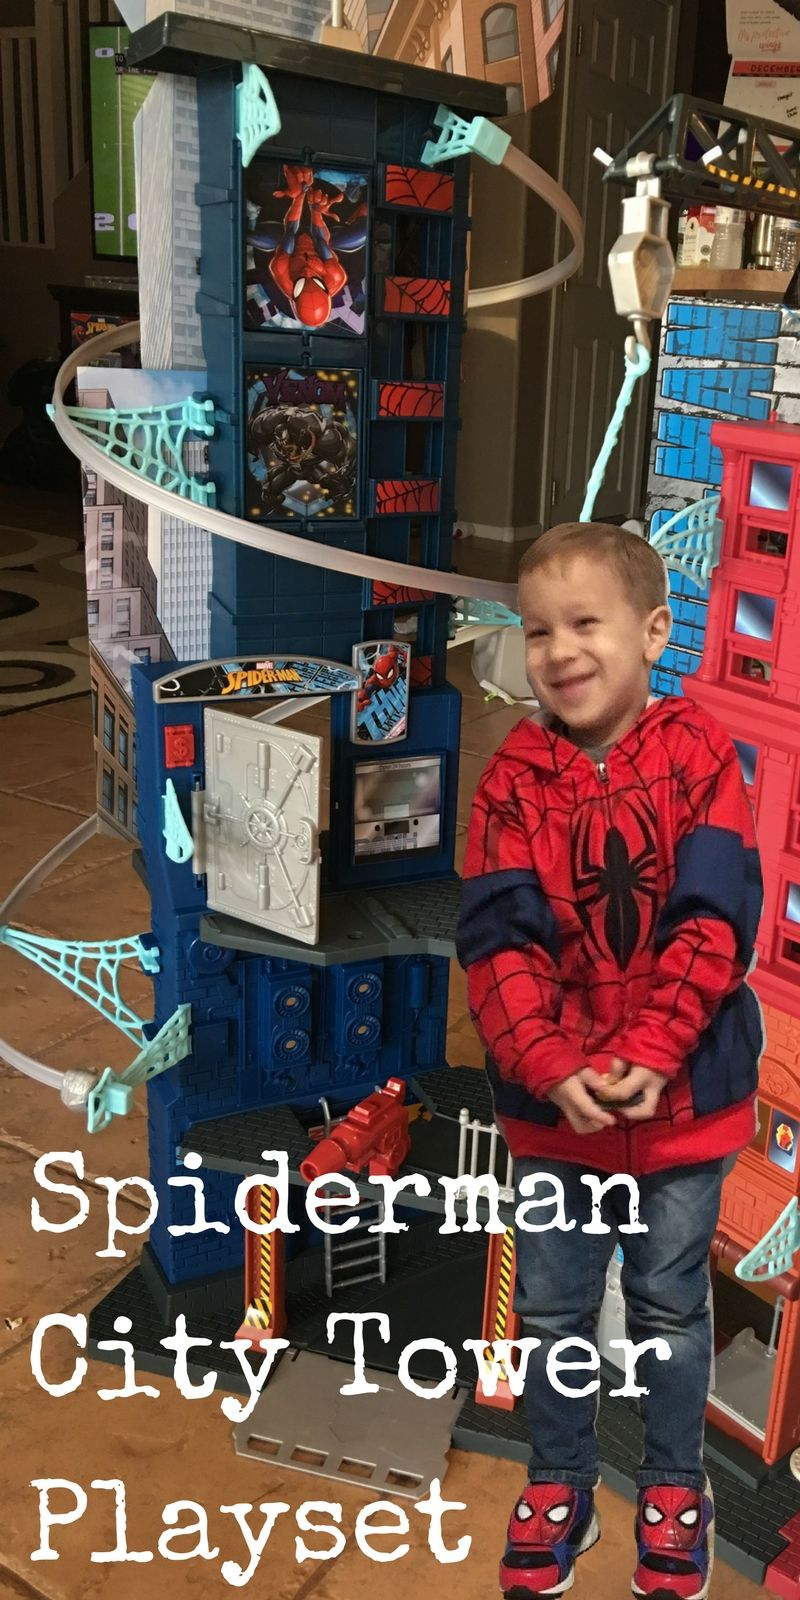 The Spideman Mega City Tower Playset! A 5 Year Old Dream